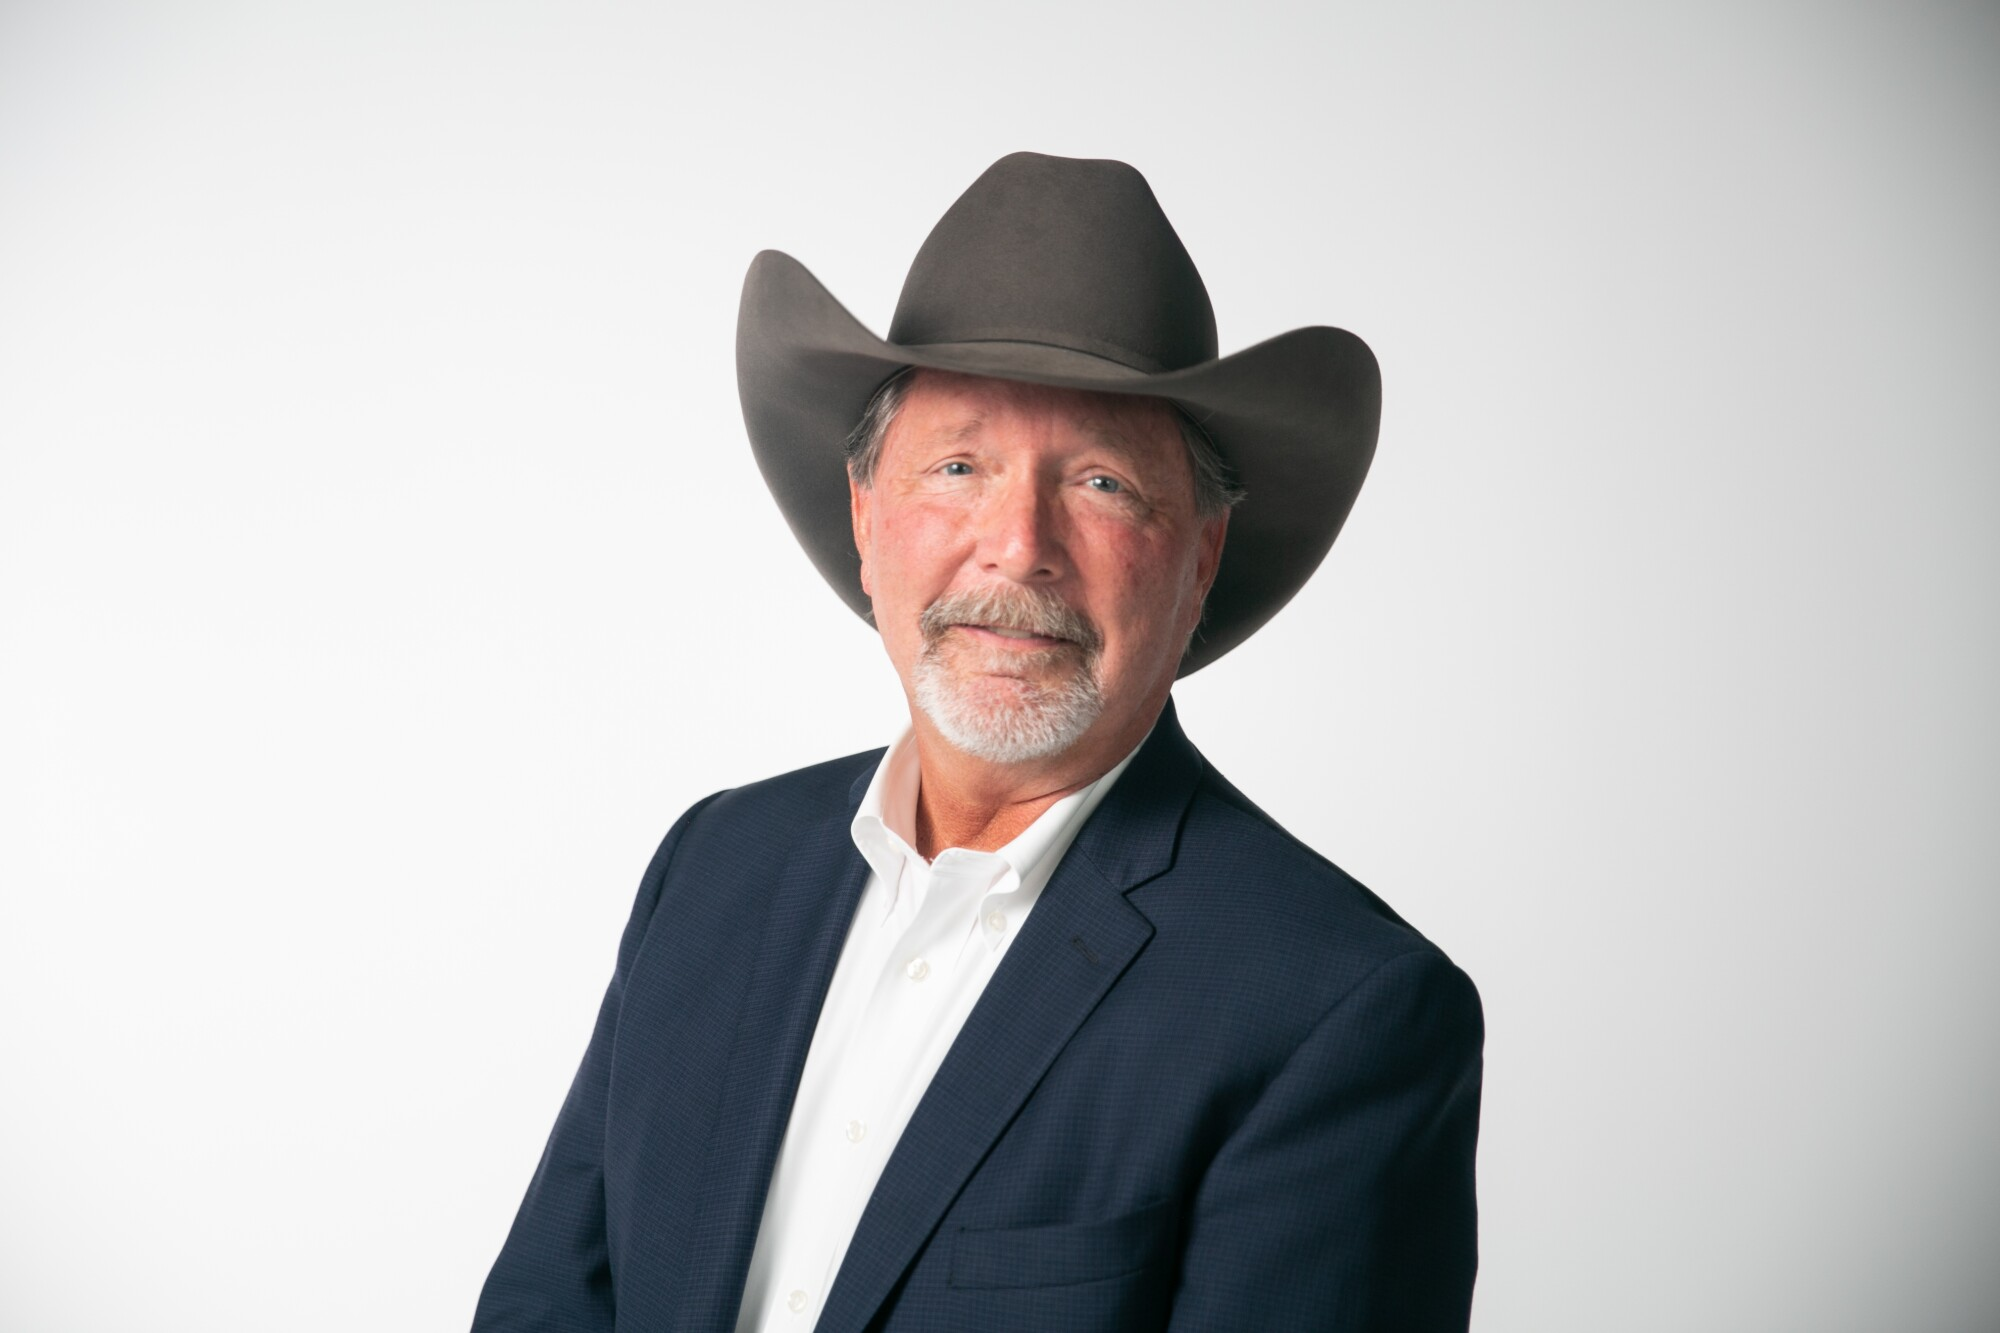 Poway Mayor Steve Vaus, a candidate for the San Diego County Board of Supervisors District 2.